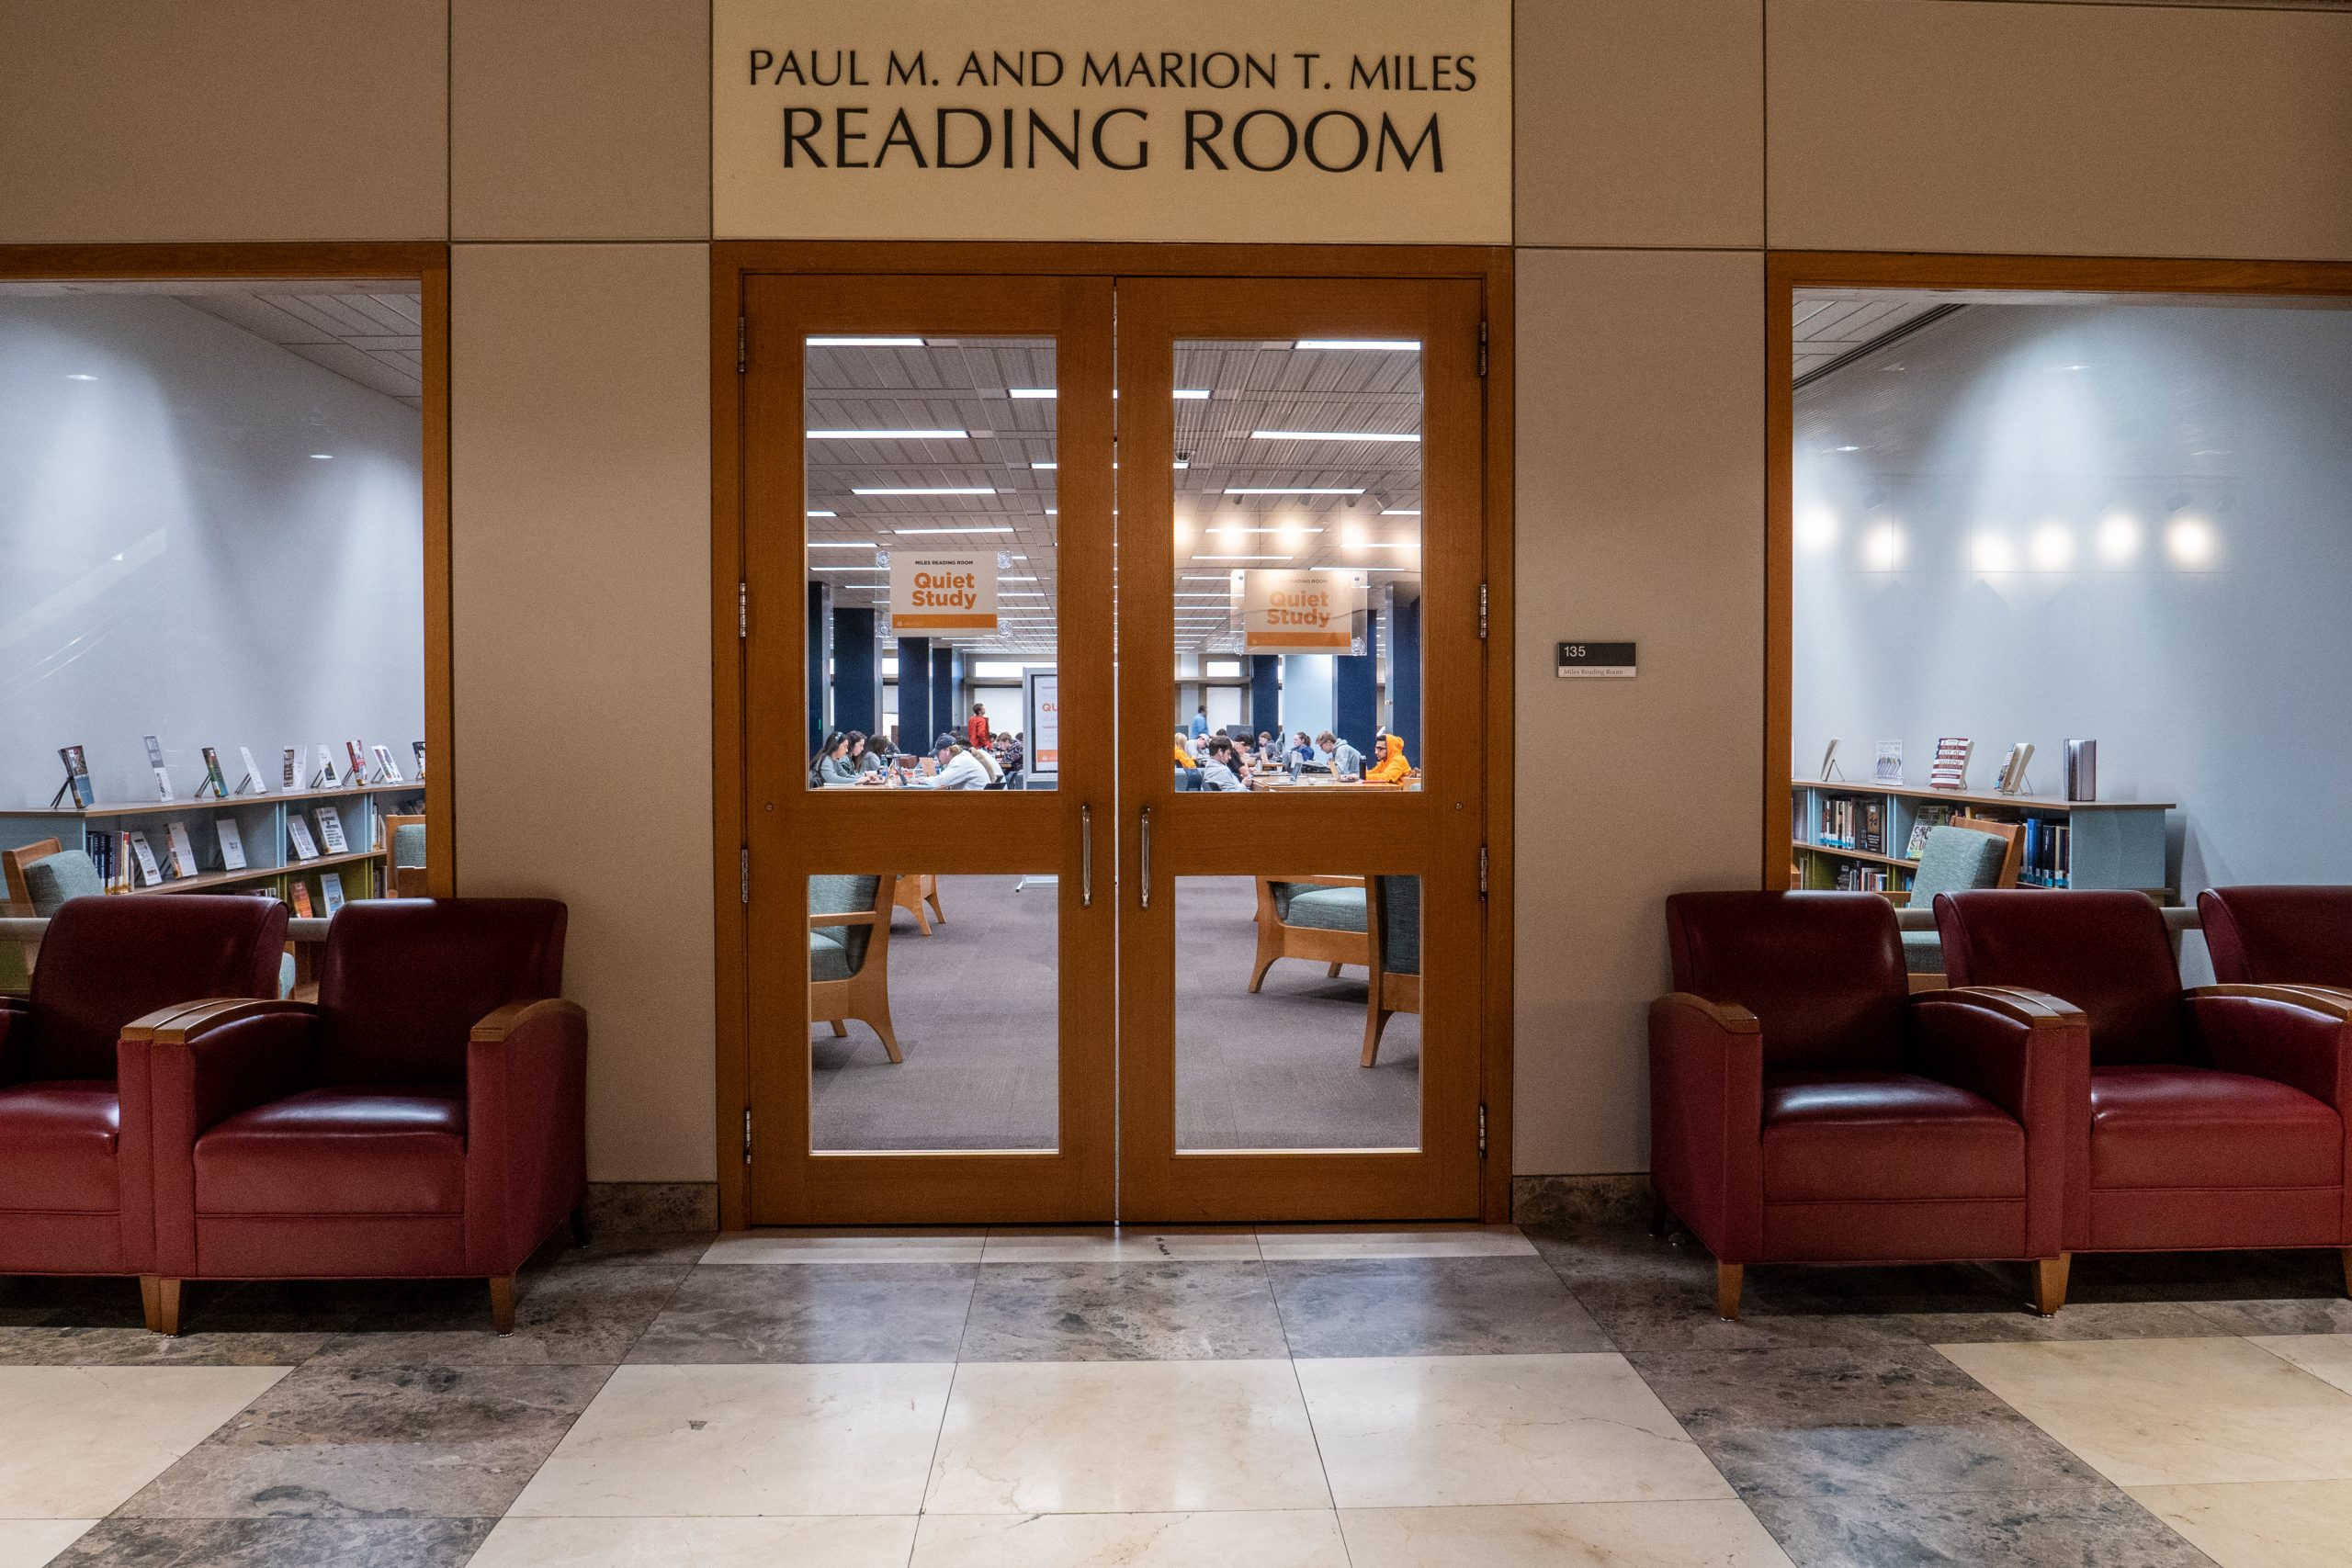 Paul M. and Marion T. Miles Reading Room at hodges library - university of tennessee